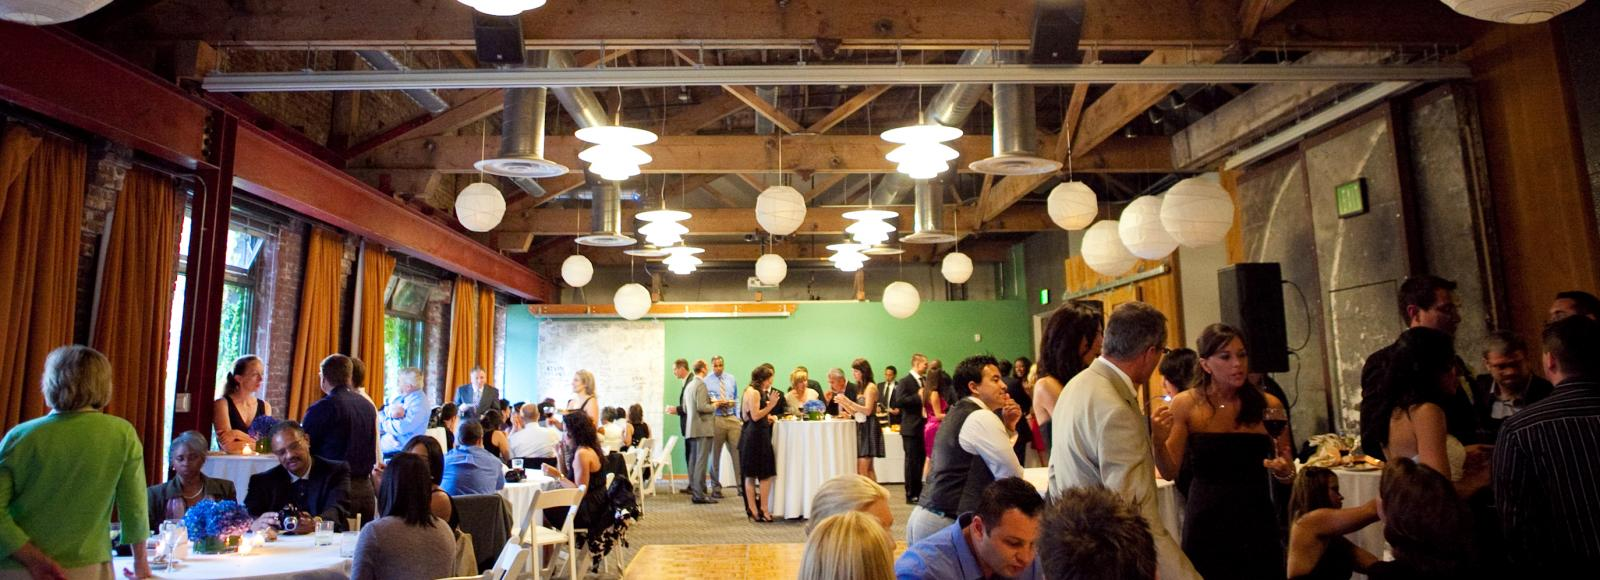 Party inside the Billy Frank Jr. conference center conference room. Dance floor. White paper lanterns. Lots of people shmoozing.